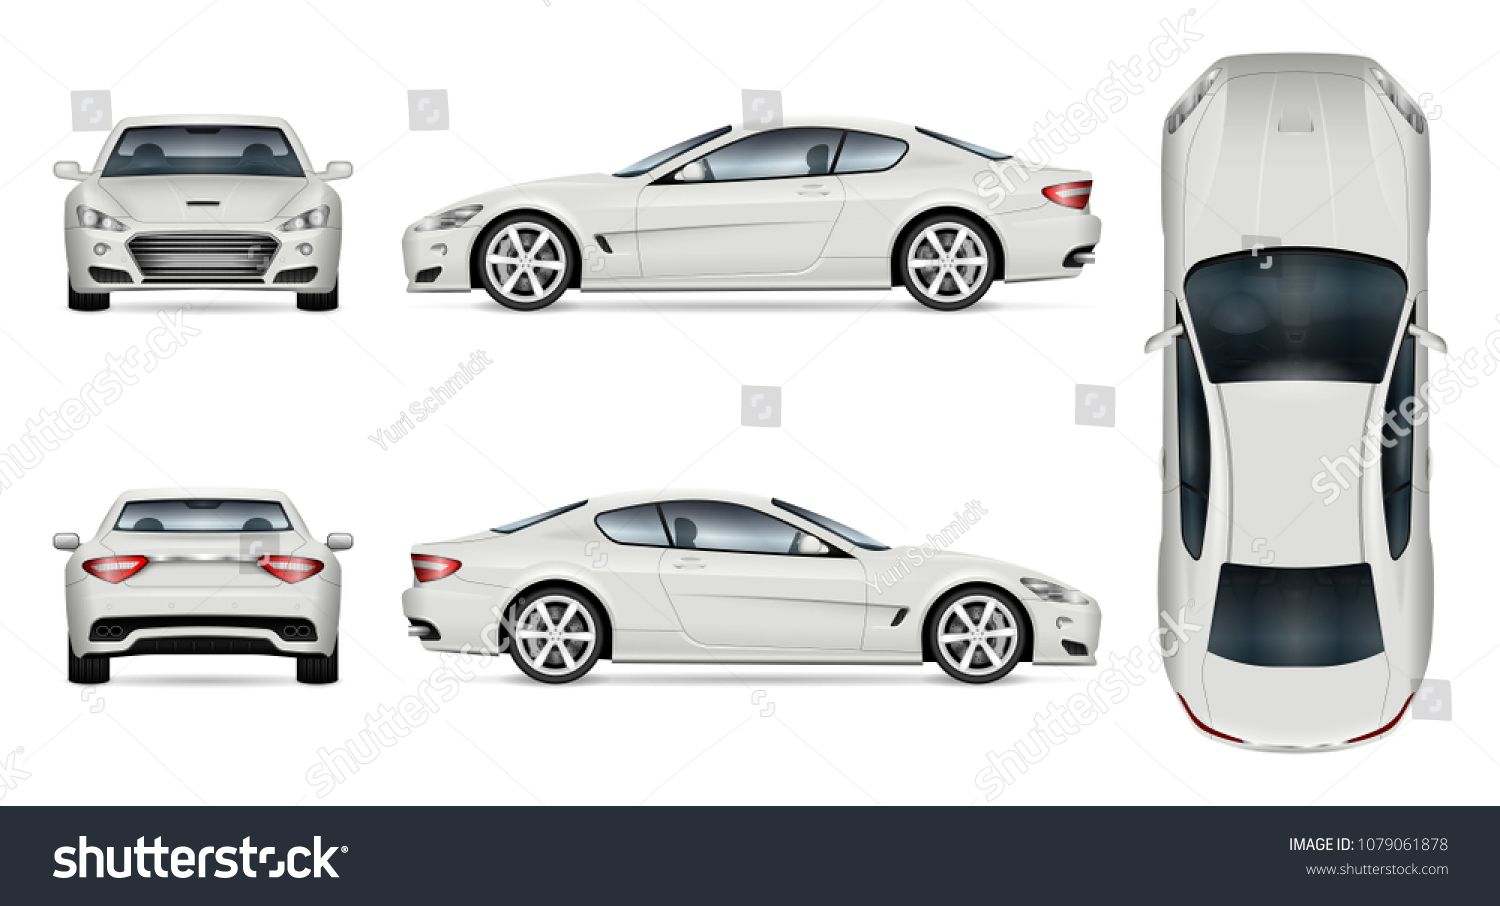 Car Vector Mock Up Isolated Template Of Supercar On White Background Vehicle Branding Mockup Side Front Back Top View A Car Vector Super Cars Car Brands